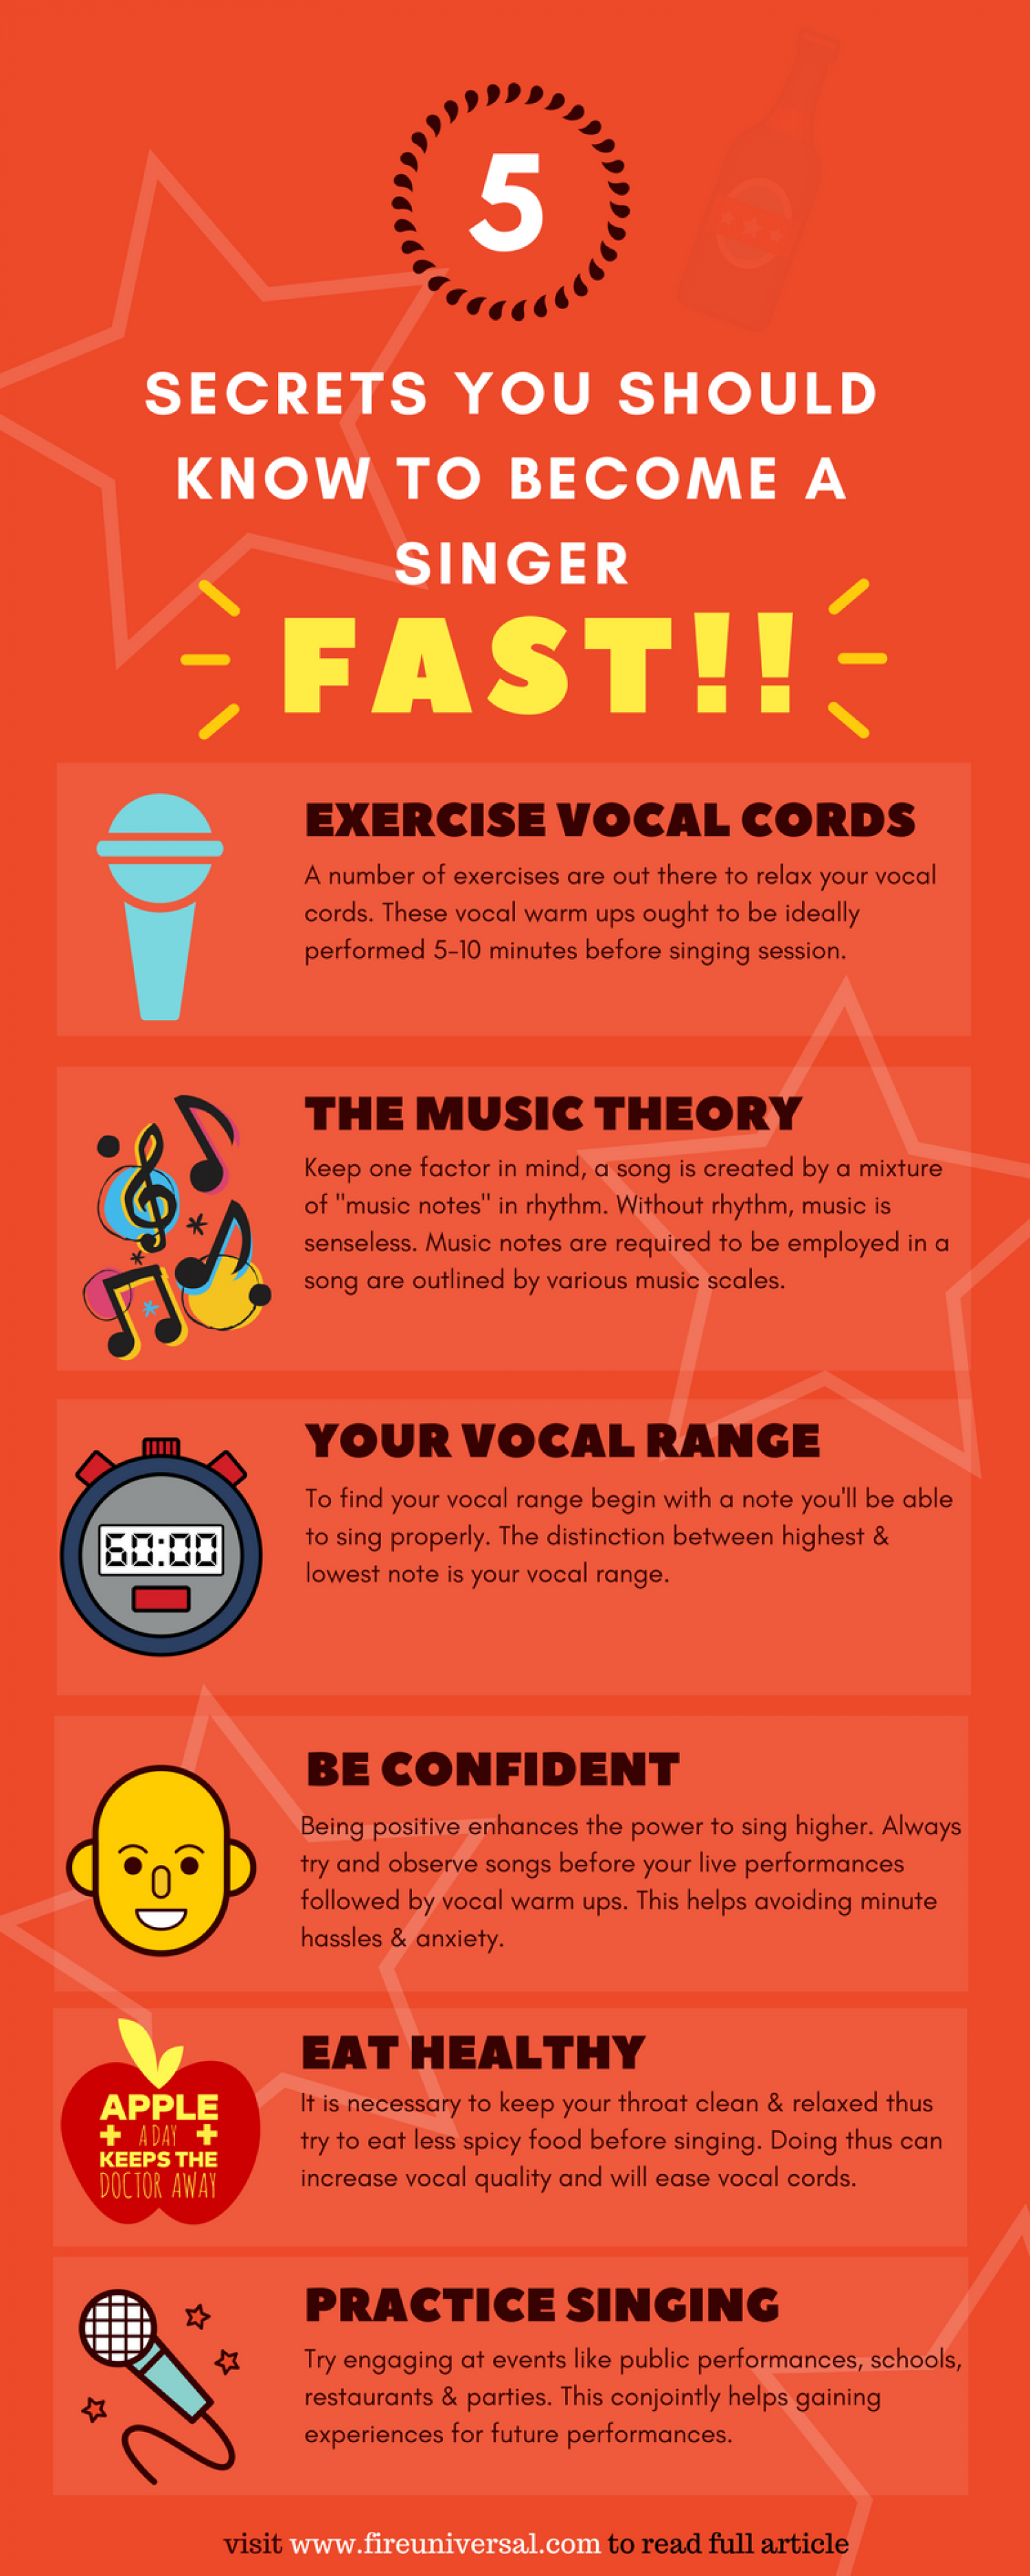 Secrets You Should Know to Become a Singer Infographic